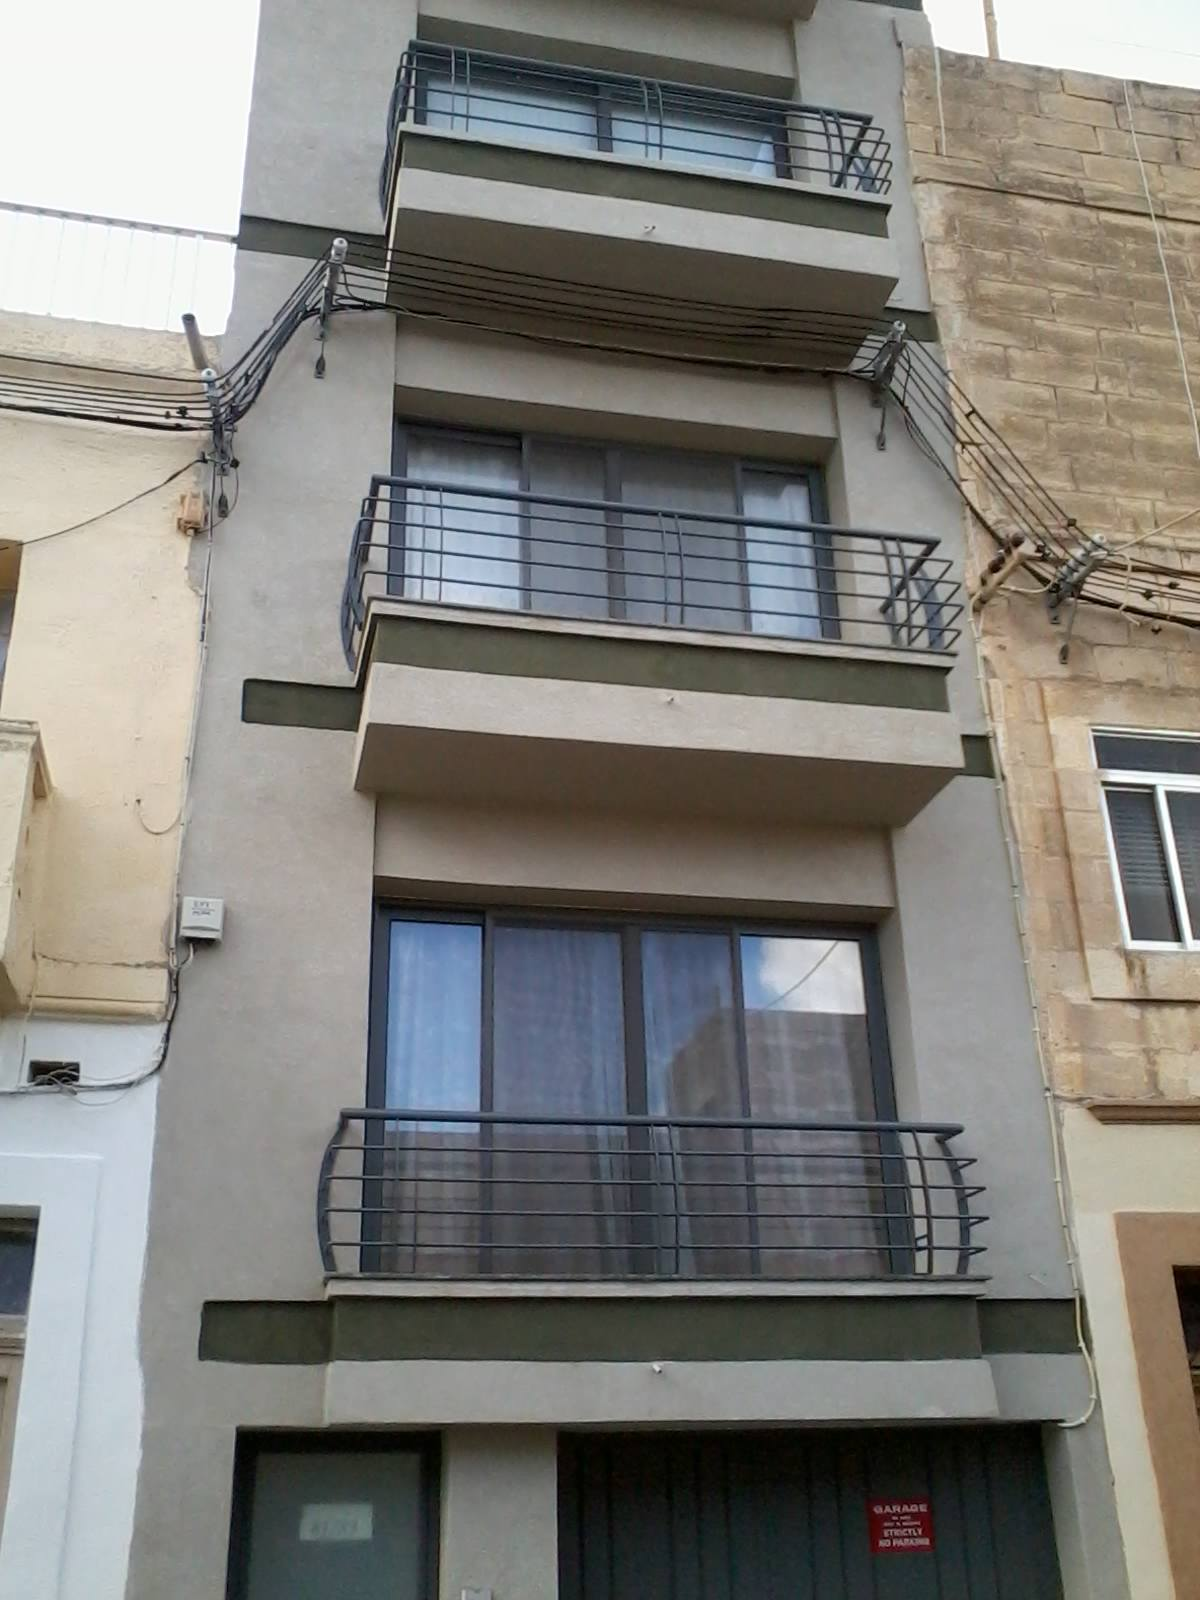 Balconies - Private Client - Salina